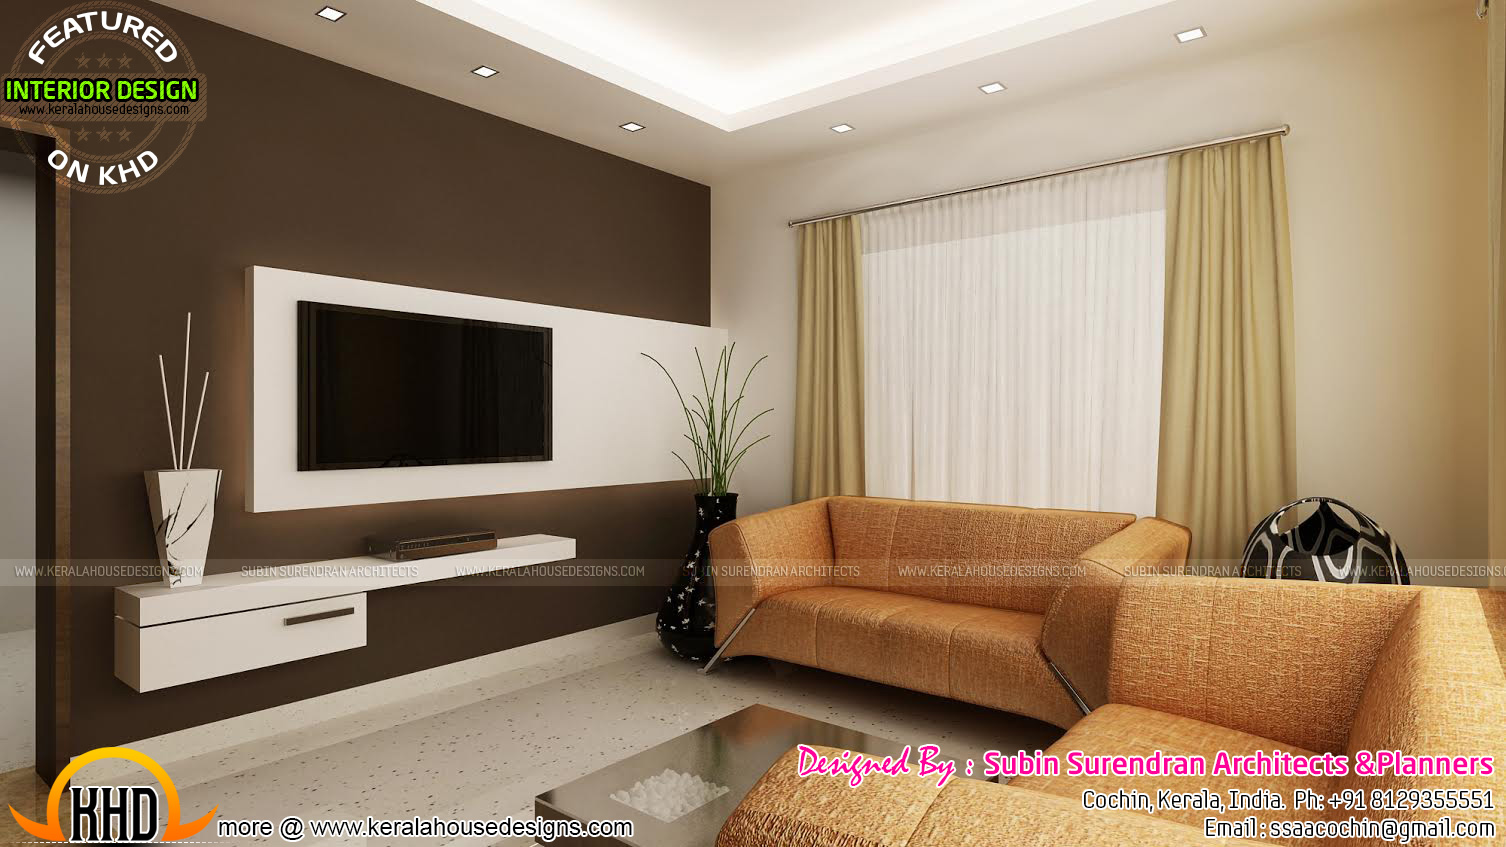 Living rooms modern kitchen interiors in kerala kerala for Interior design living room layout